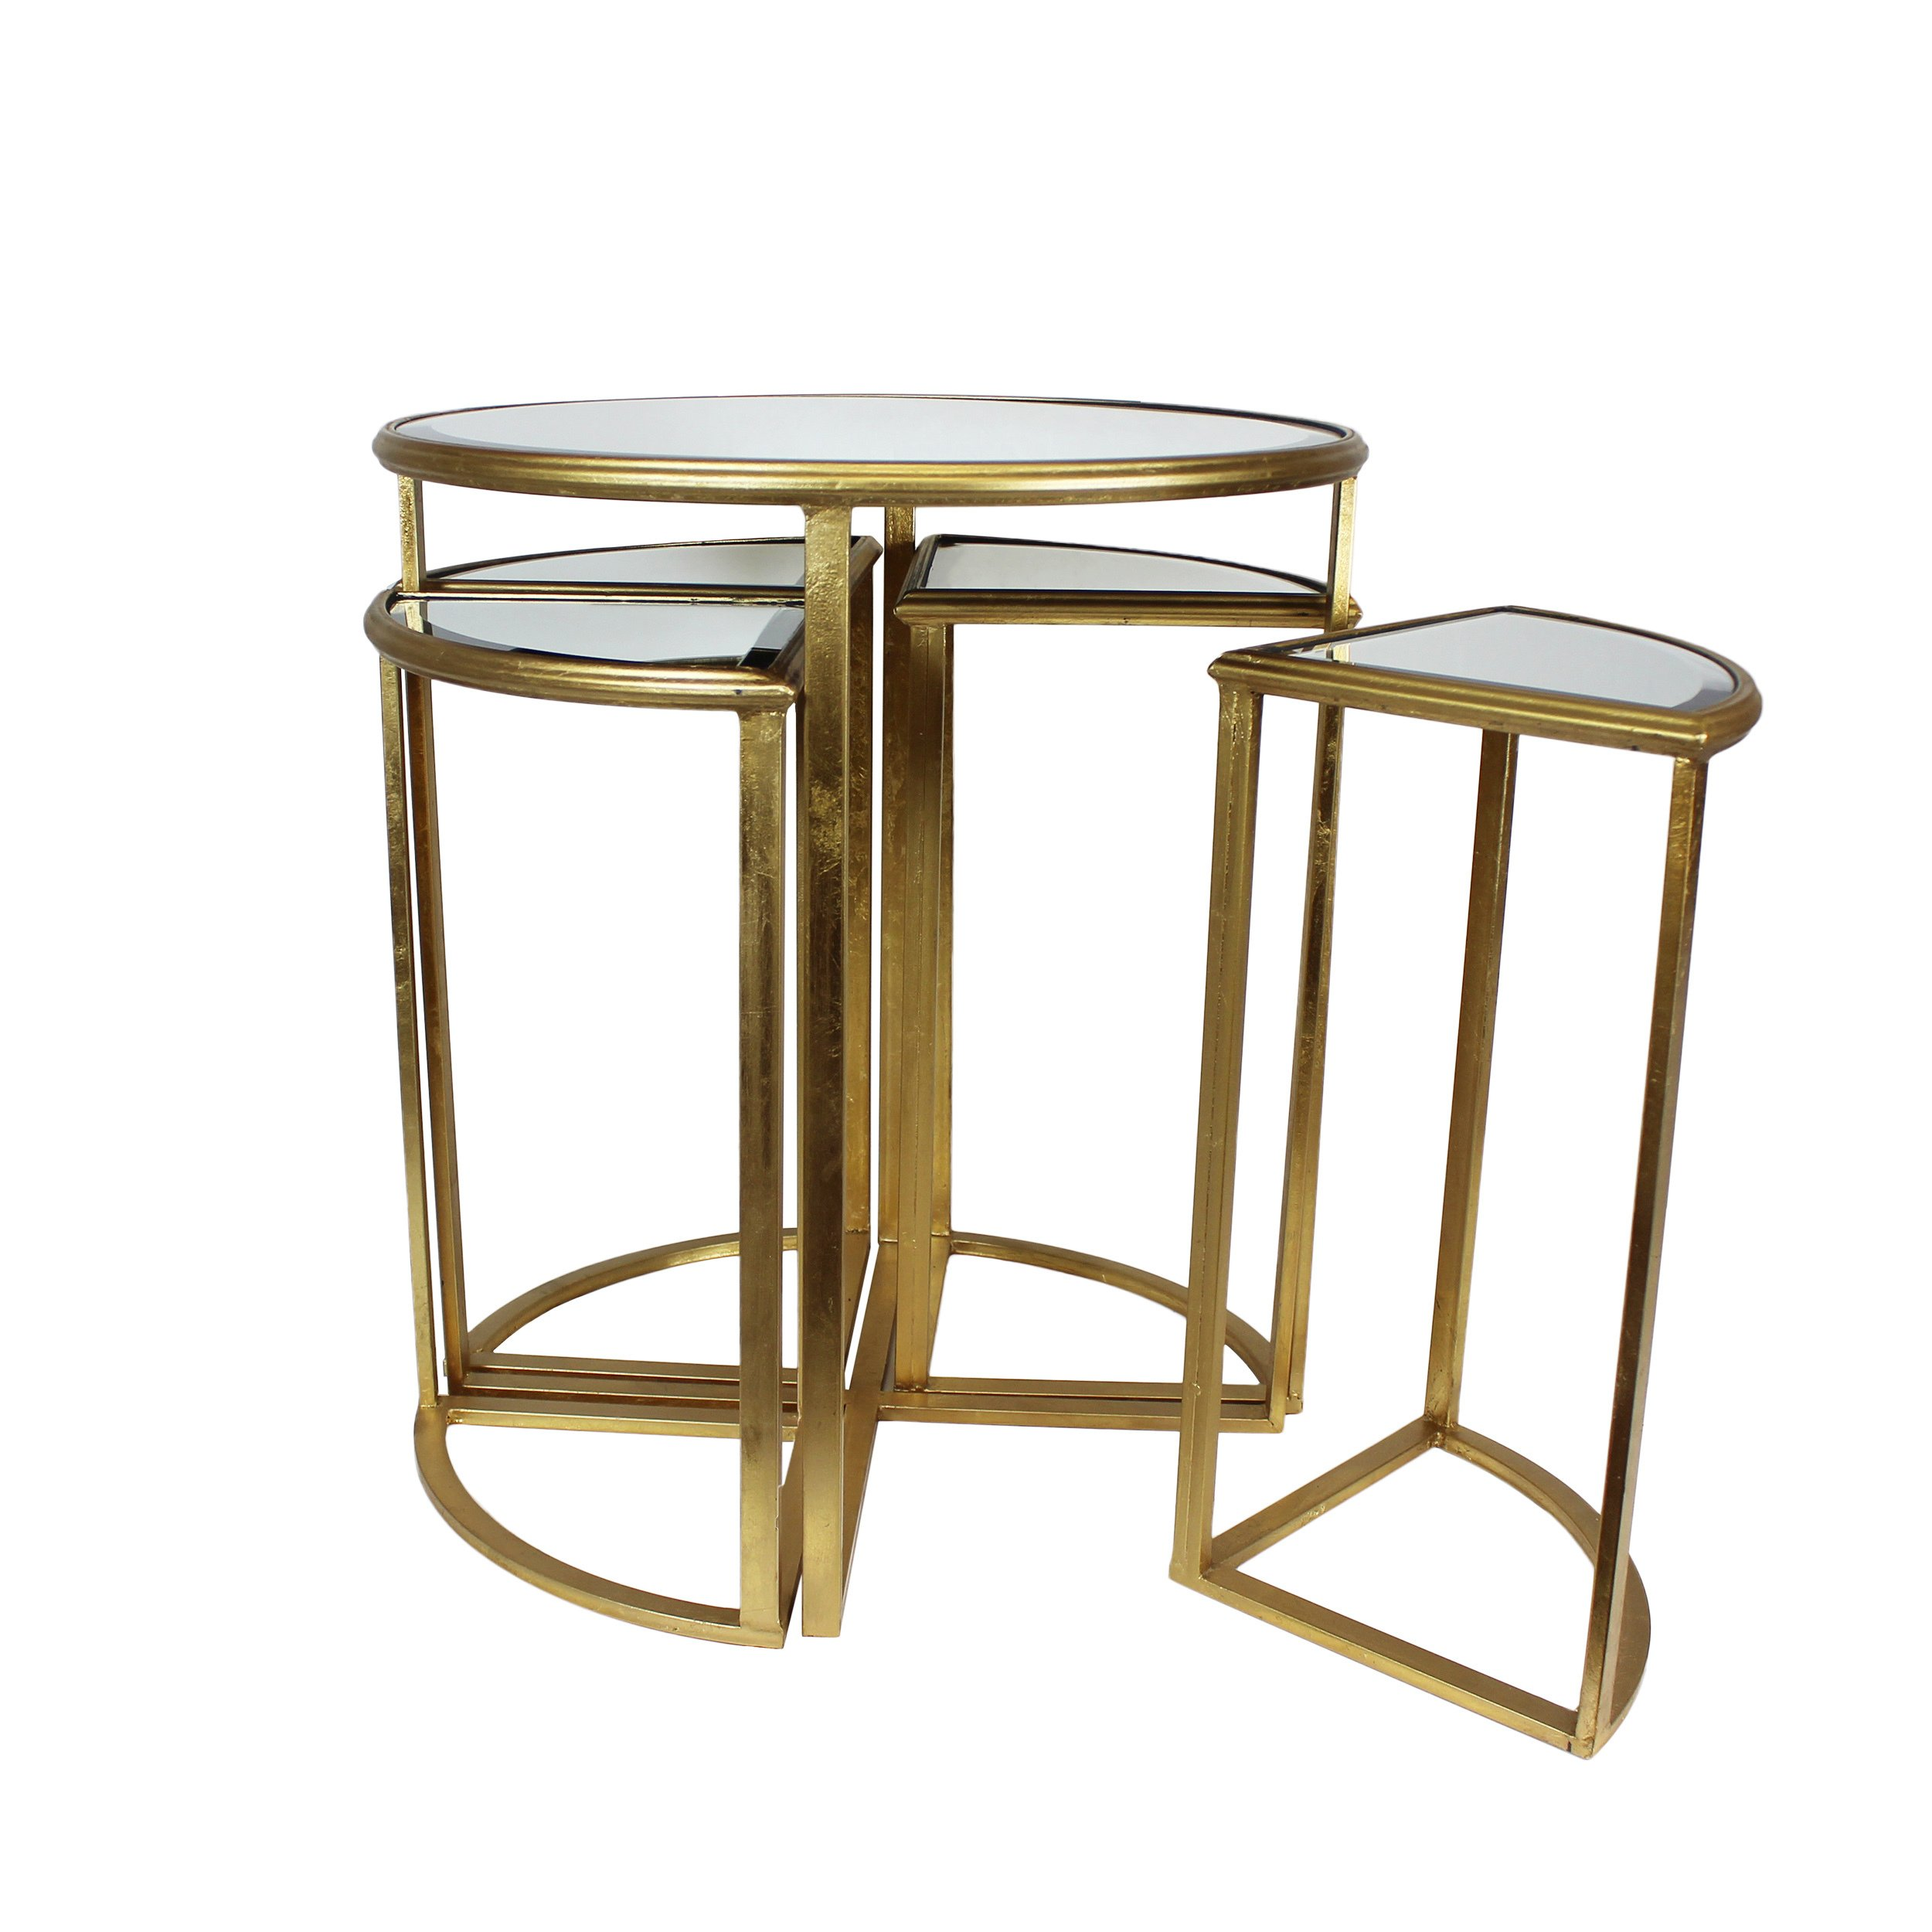 urban designs round gold mirror nesting accent table set free shipping today hanging wall clock oval marble coffee vaughan furniture small slim bedside dining cover wicker fur